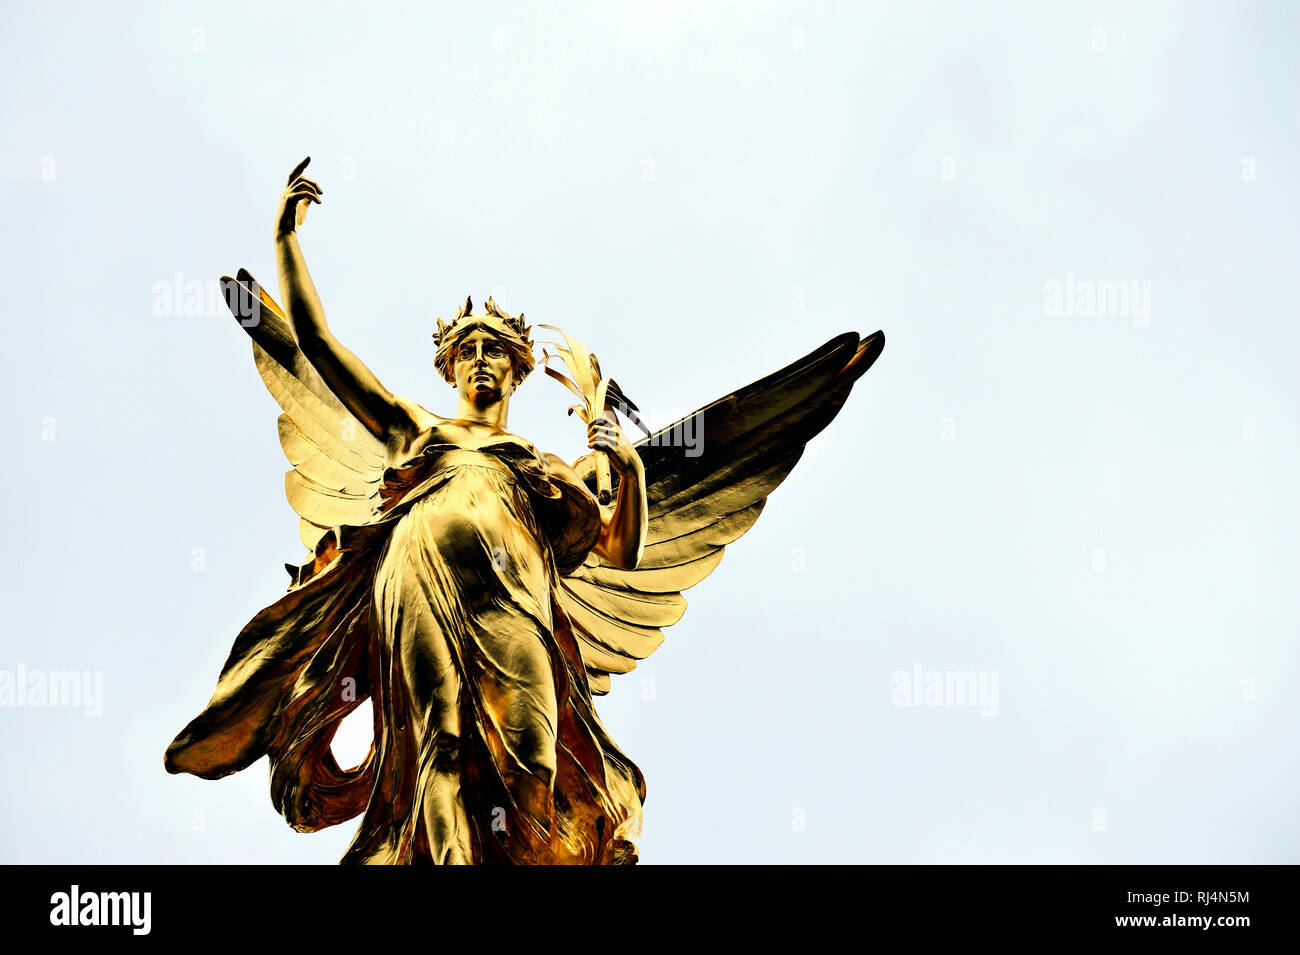 goldener Engel auf dem Queen Victoria Denkmal vor dem Buckingham Palace in London - Stock Image